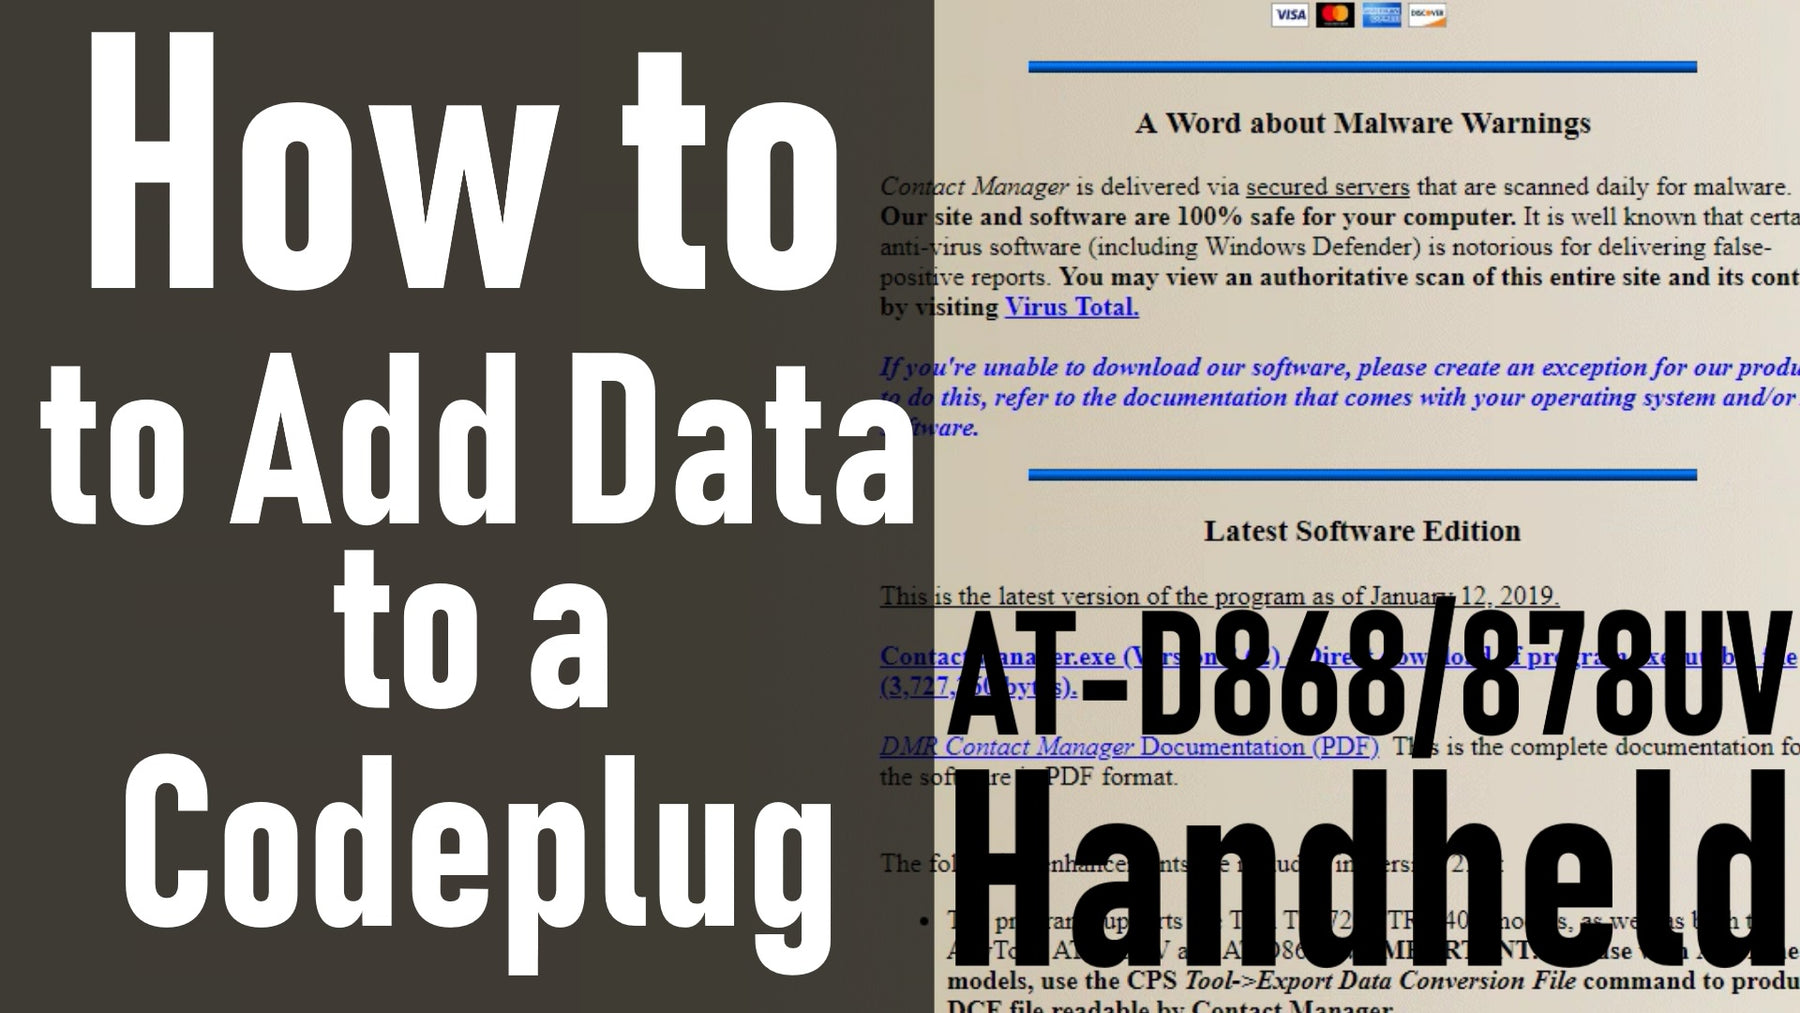 How to Add Data to a Codeplug with Contact Manager AT-D868/87